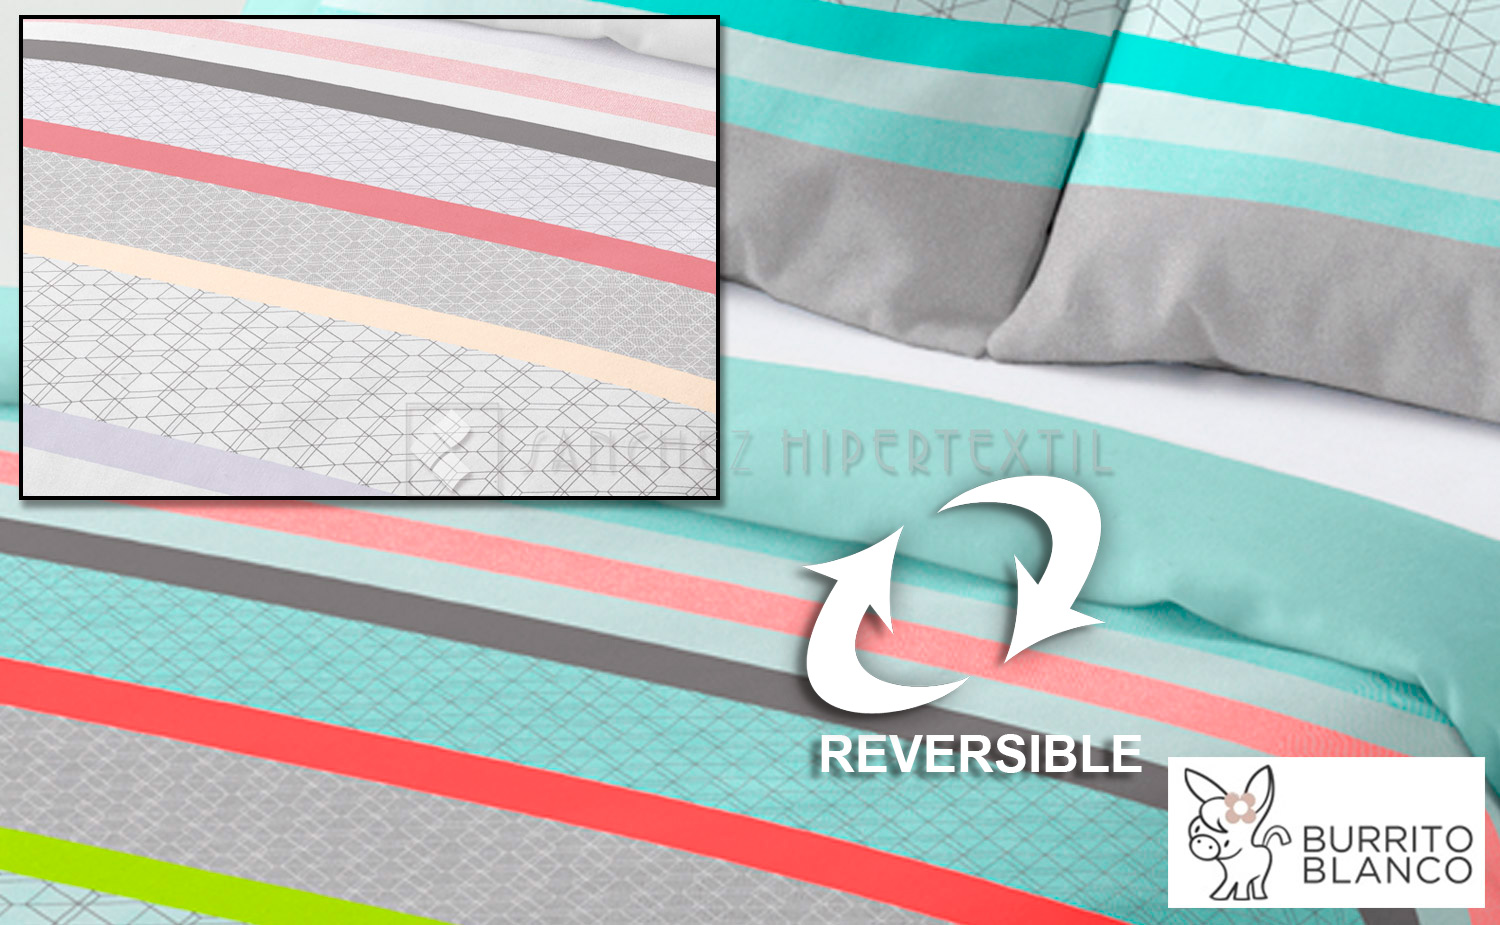 Duvet cover set 2 pieces reversible + bag D-119 by BURRITO BLANCO.